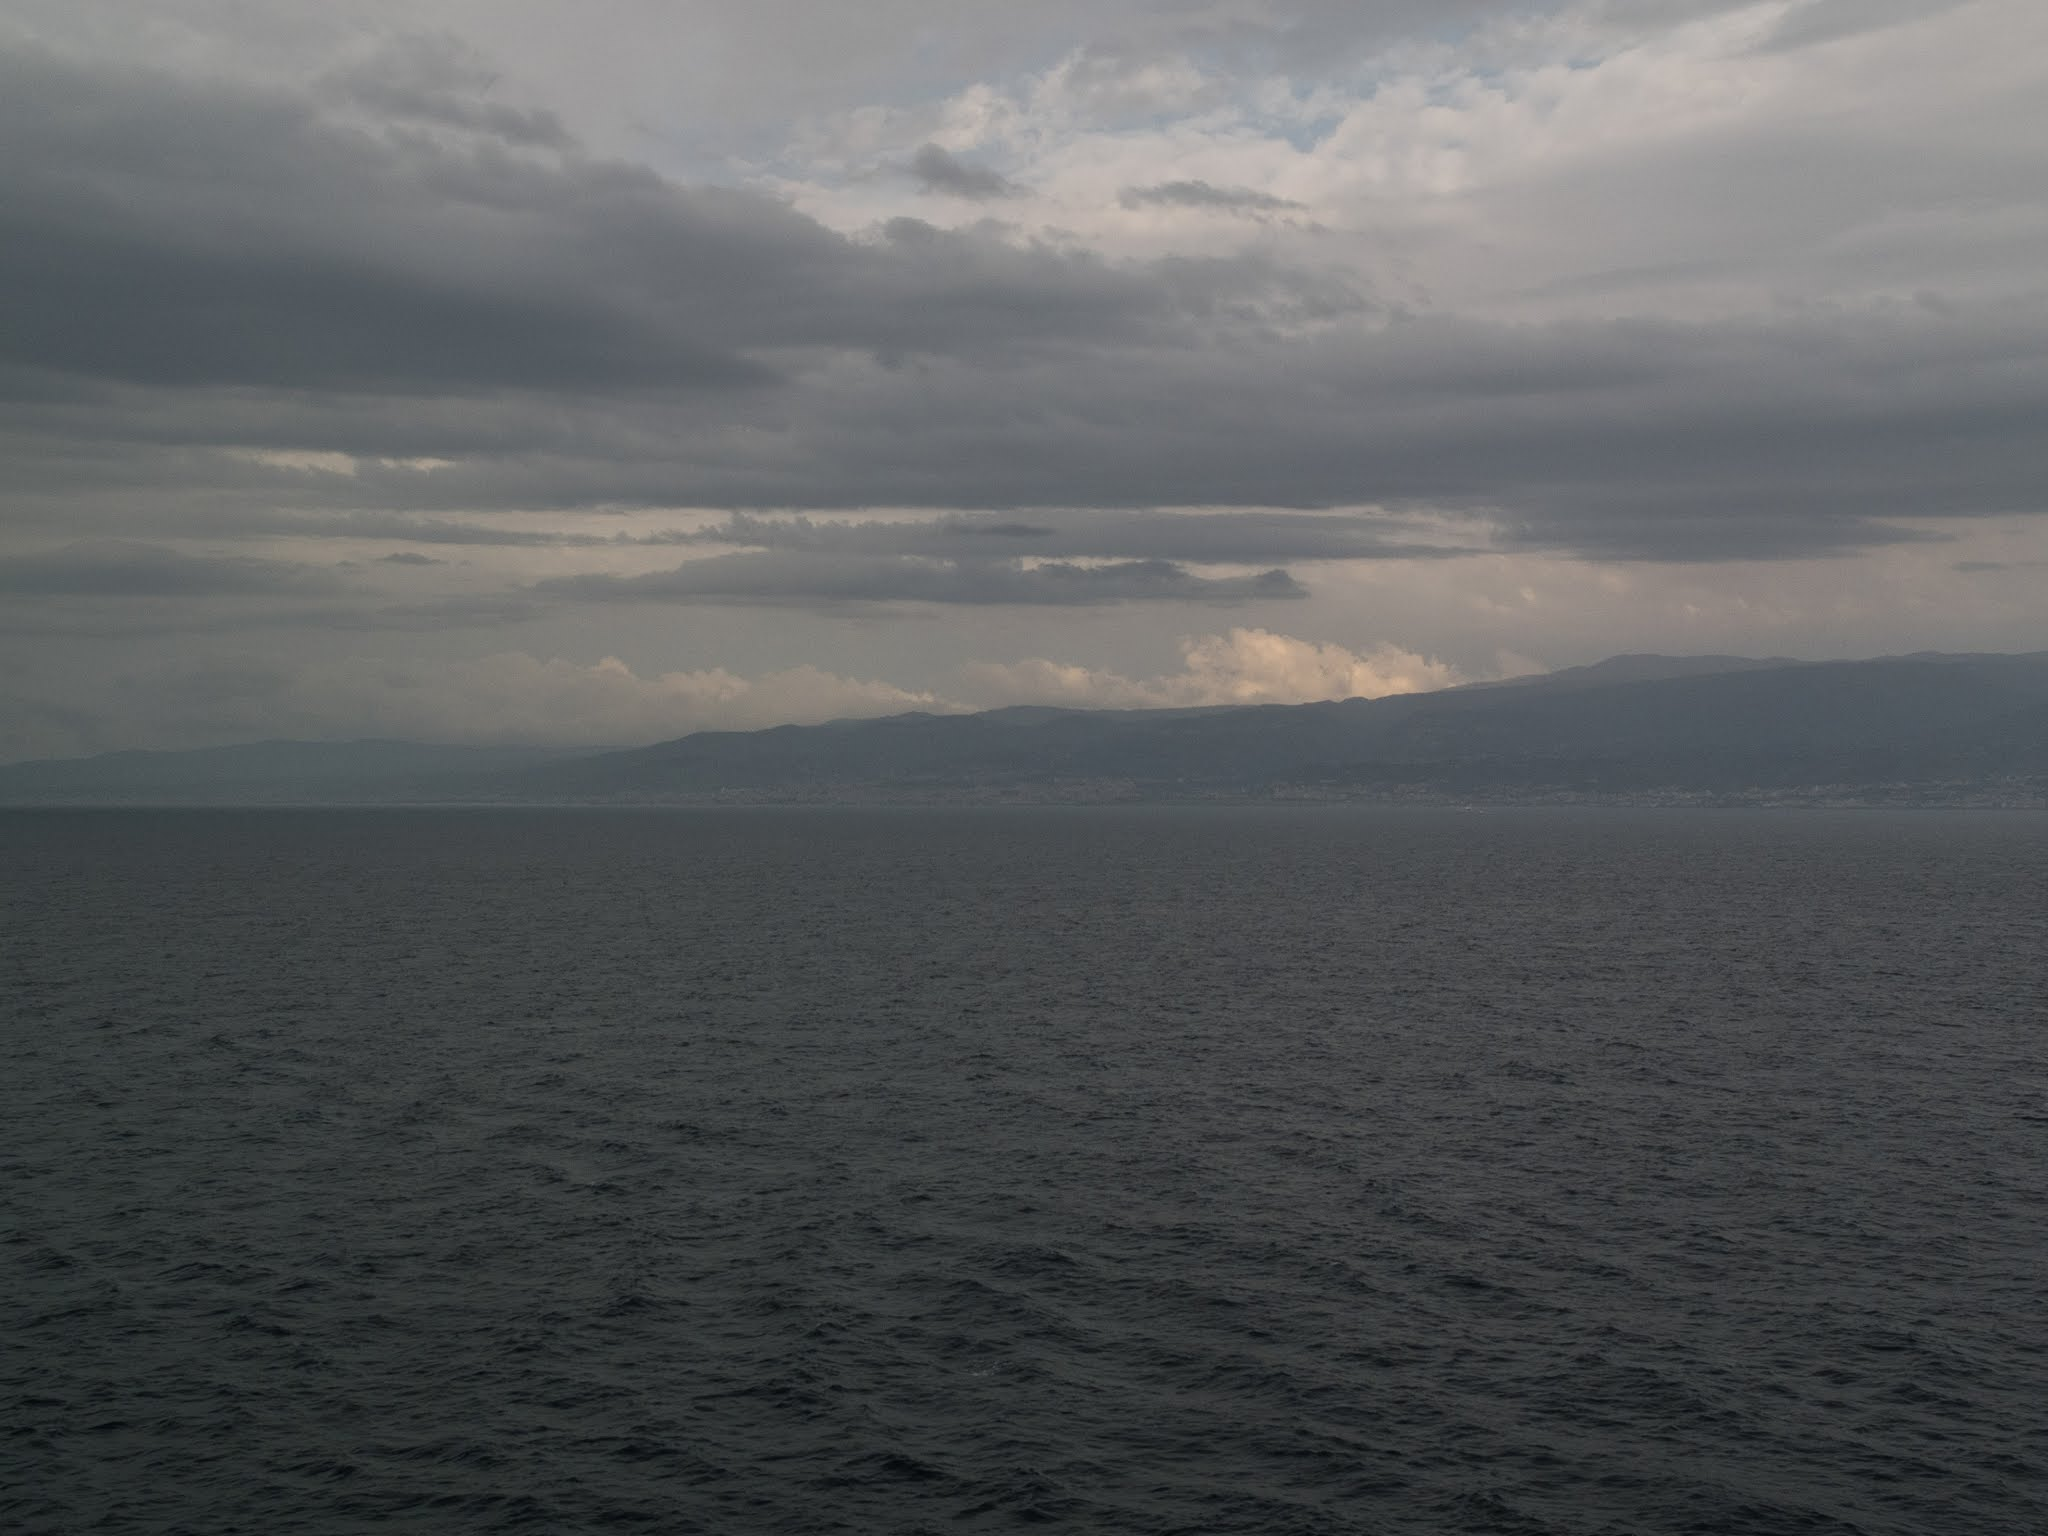 Mediterranean landscape and sky from the sea.